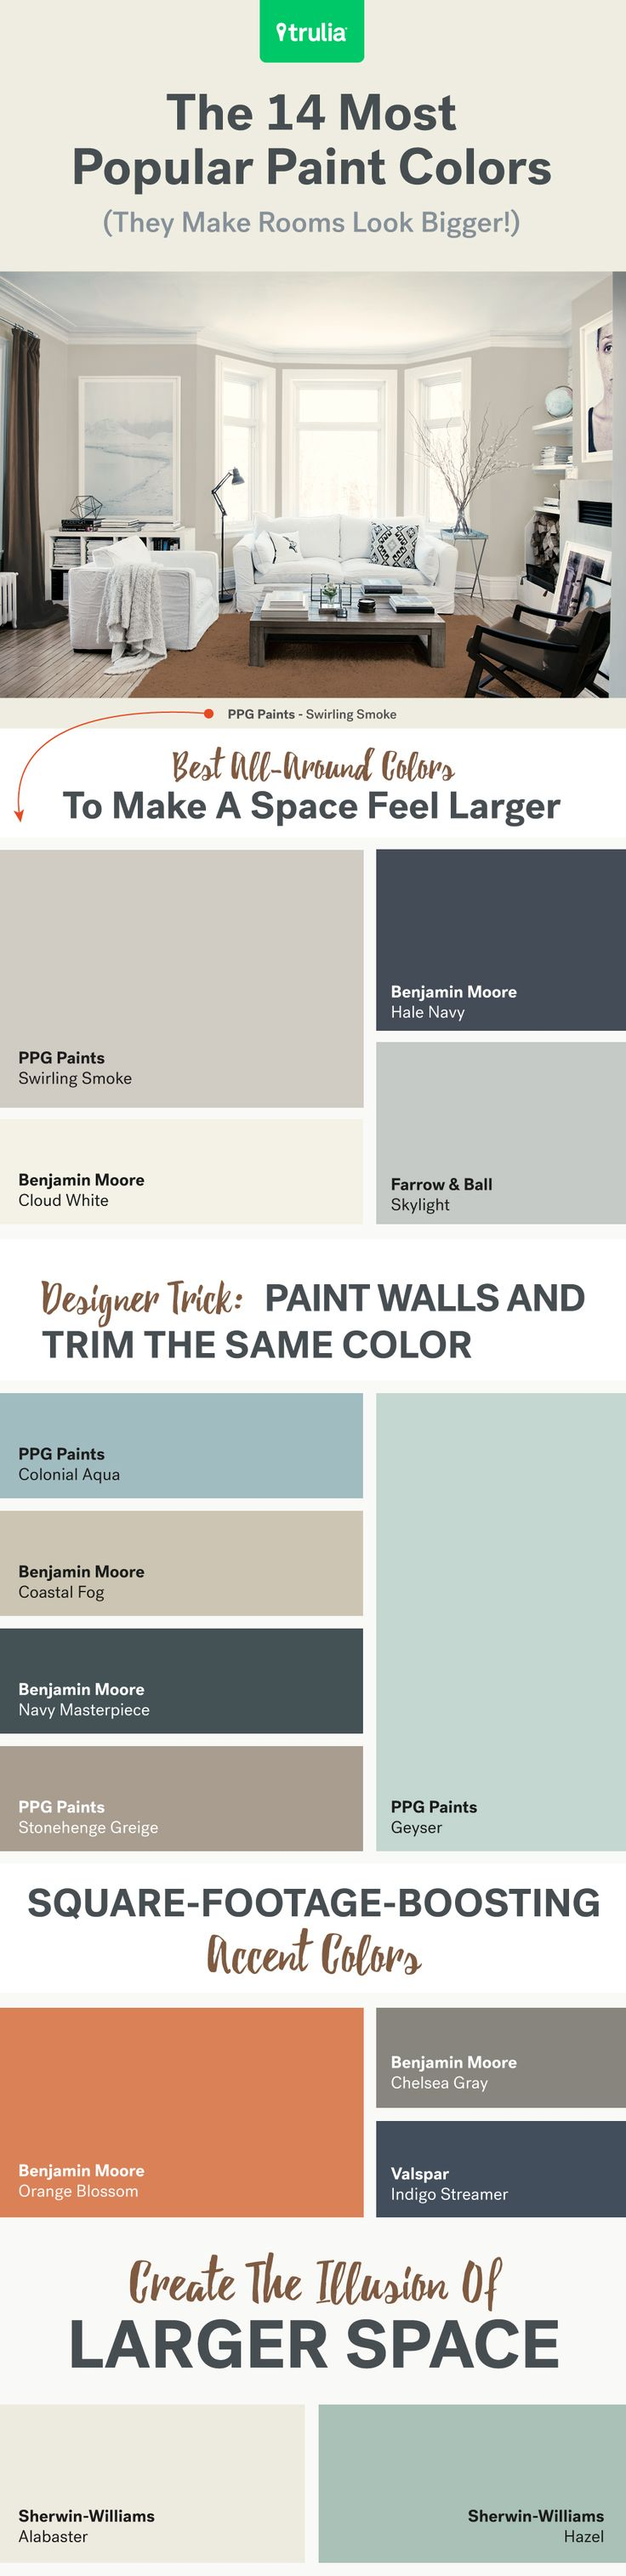 The 14 Most Well-liked Paint Colours (They Make A Room Look Larger!)…